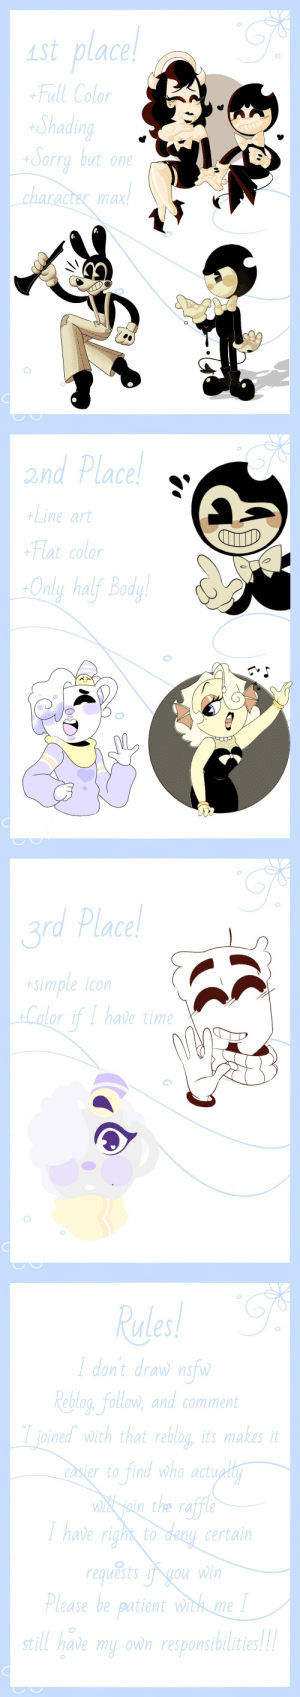 ramenlovin:  ramenlovin:  Art raffle is up guys you have until May 10th!  Art raffle still up!: st place  Full Color  Shadi  tOorru but one  .ch  aract& max   2nd Place!  Line art  Flat color  Only half Bod  1   rd Place  simple icon  Calor if I have time   Les  dont drawn  Rlog fellon, and commen  joined with that reblog, its makes it  sier to find who actuoli  iain the raffle  have righs  have righs to deay certain  requ&ts i you win  ase be paient withme  till have my ovwn responsibilities ramenlovin:  ramenlovin:  Art raffle is up guys you have until May 10th!  Art raffle still up!